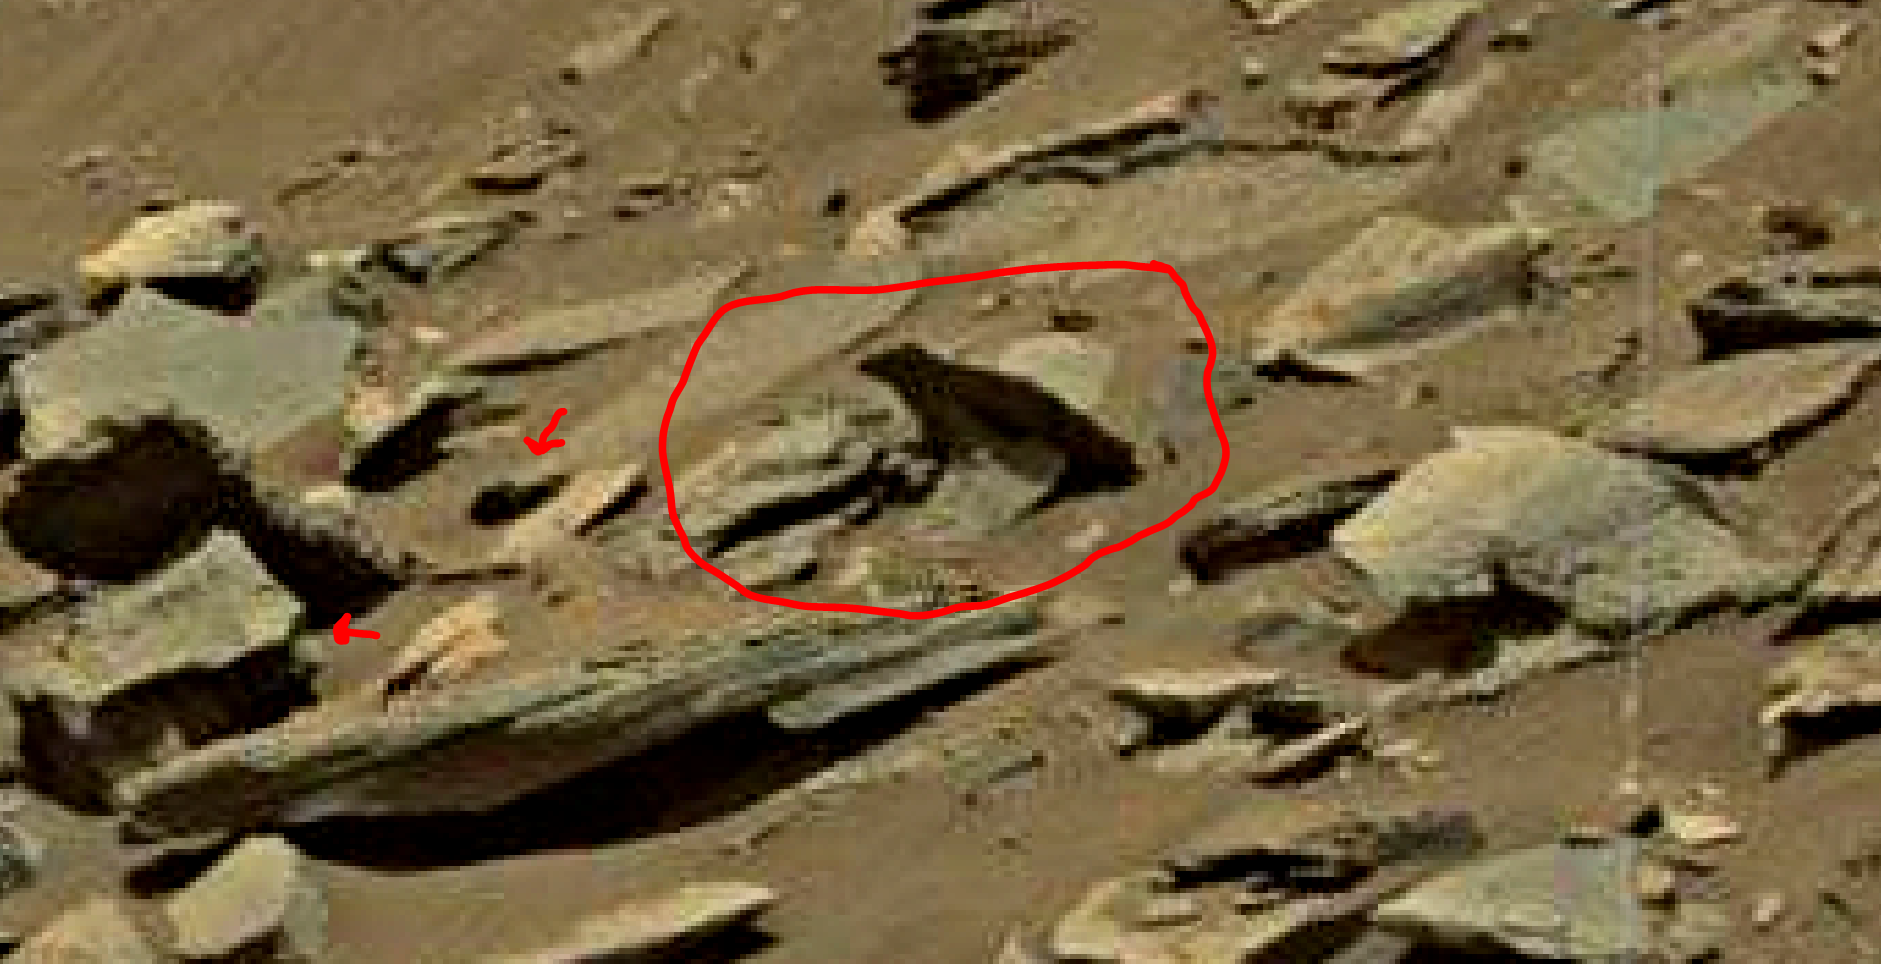 mars-sol-1455-anomaly-artifacts-2a-was-life-on-mars